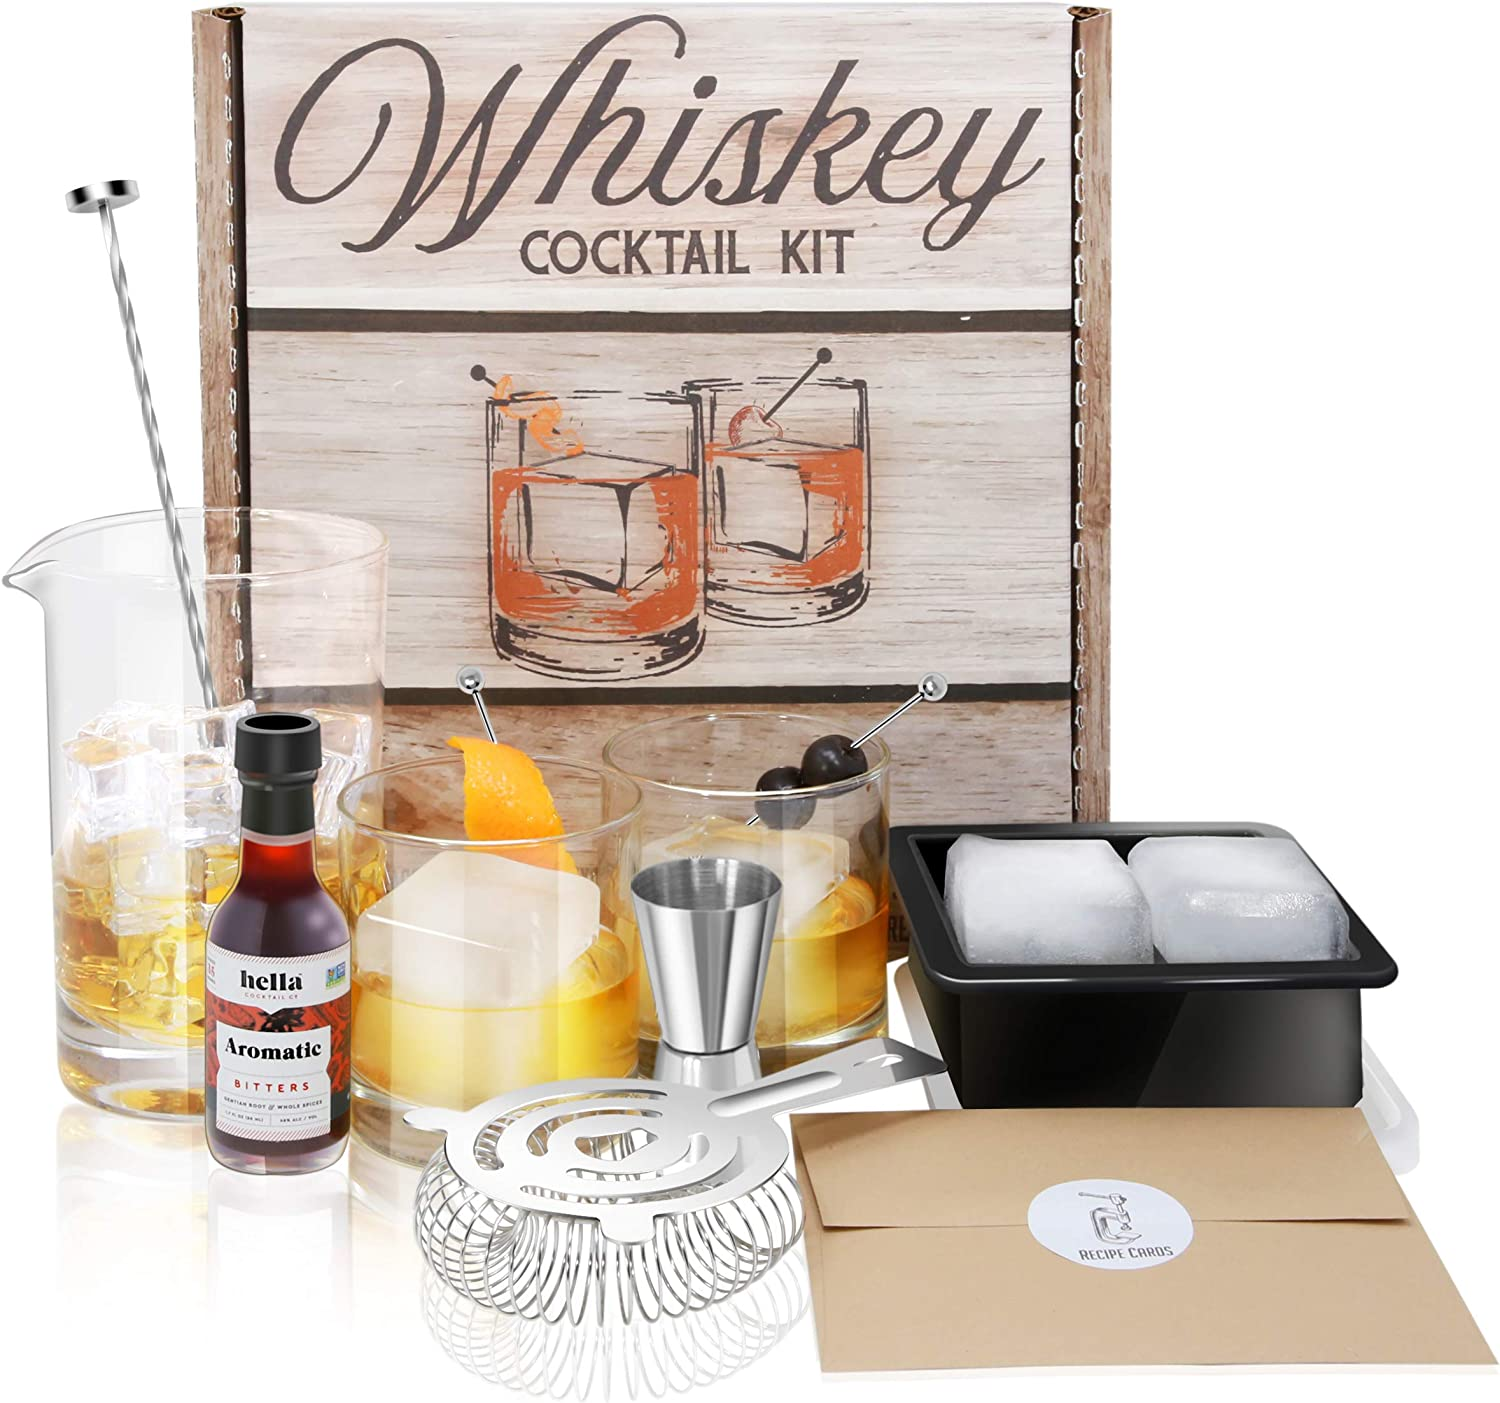 Whiskey Cocktail Kit: Rocks Drinking Glass Set | 750ml Crystal Mixing Glass | Ice Cube Mold | Stainless Bar Spoon Stirrer w/Muddler, Strainer, Jigger, Garnish Picks | Aromatic Hella Bitters | Recipes